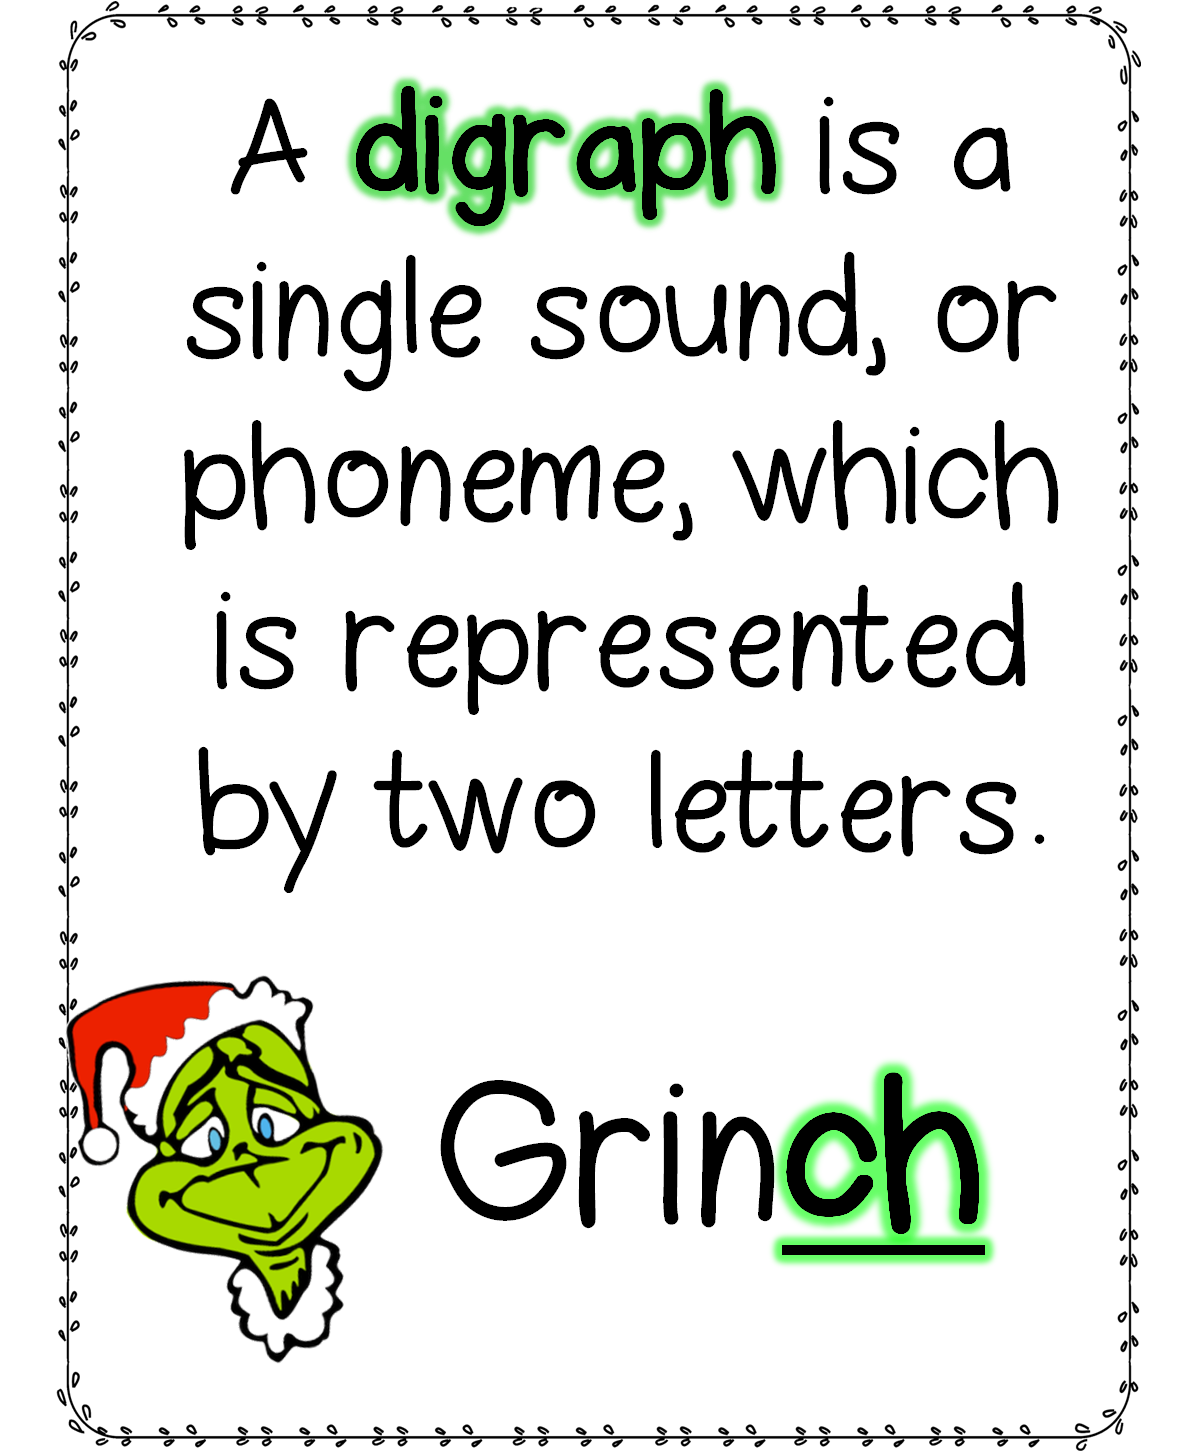 worksheet Grinch Math Worksheets grinchdigraphs png youre a sly one mr grinch png